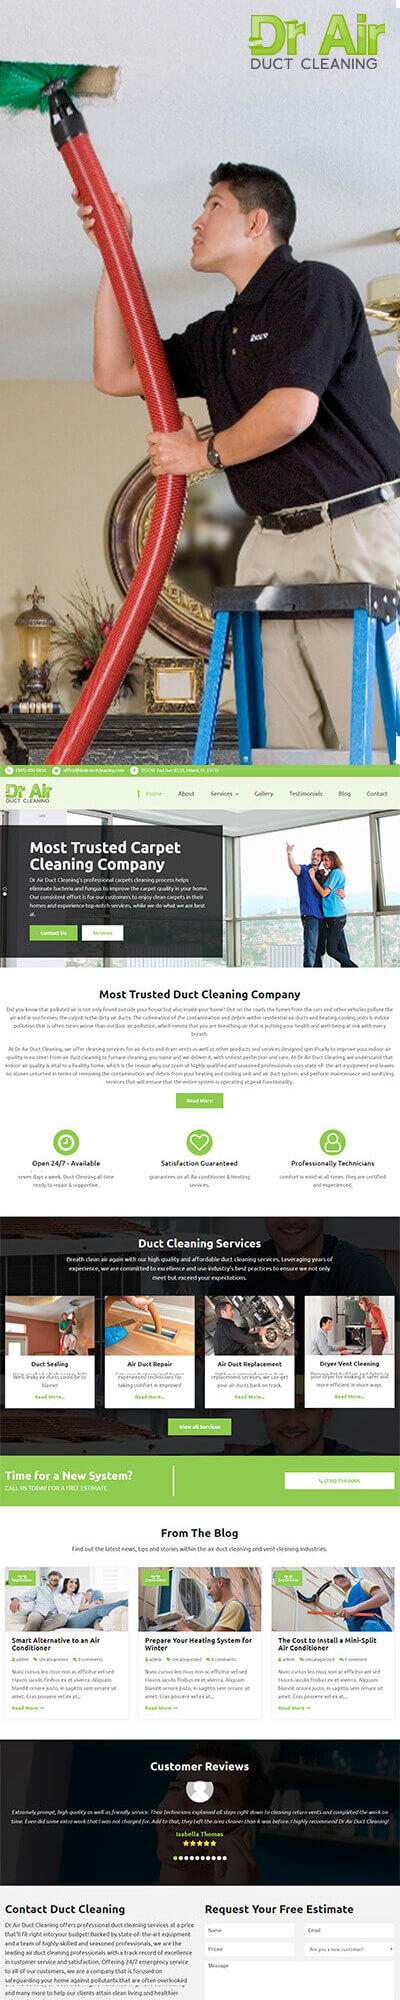 drairductcleaning